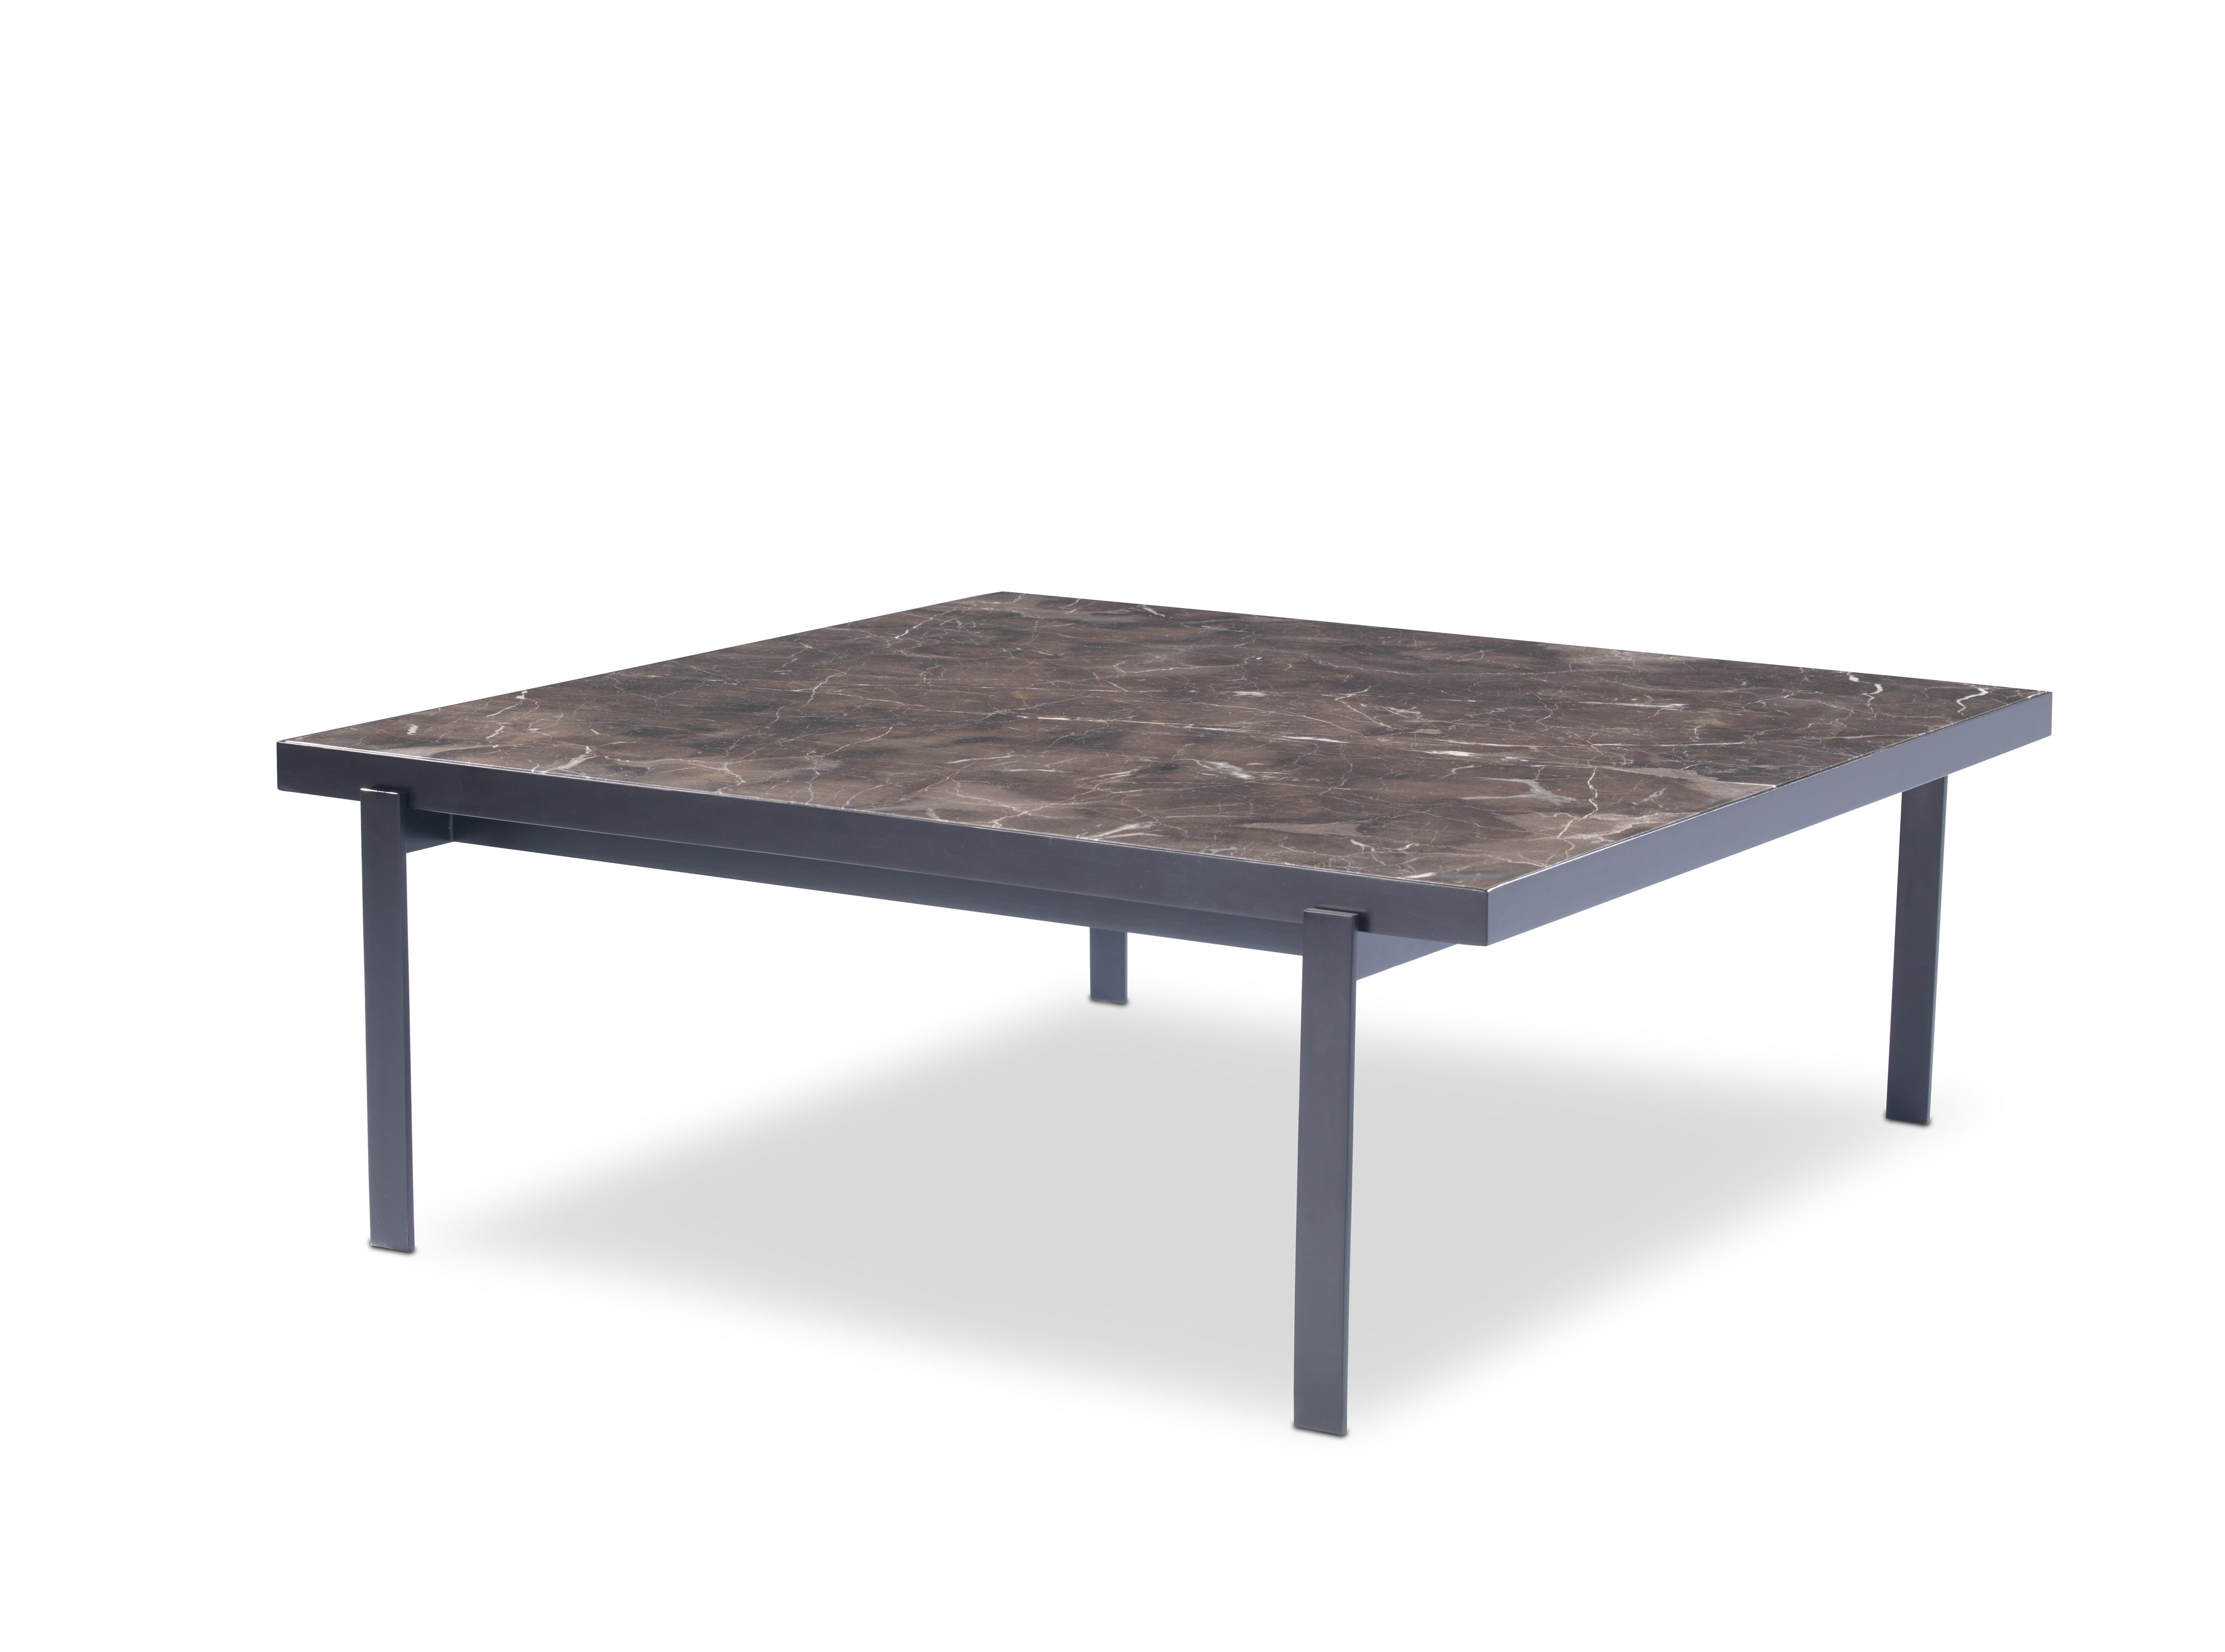 Mitchell Gold Bob Williams Montreal Table A Cafe Carre Gramercy Table Coffee Table Furniture [ 3600 x 4848 Pixel ]